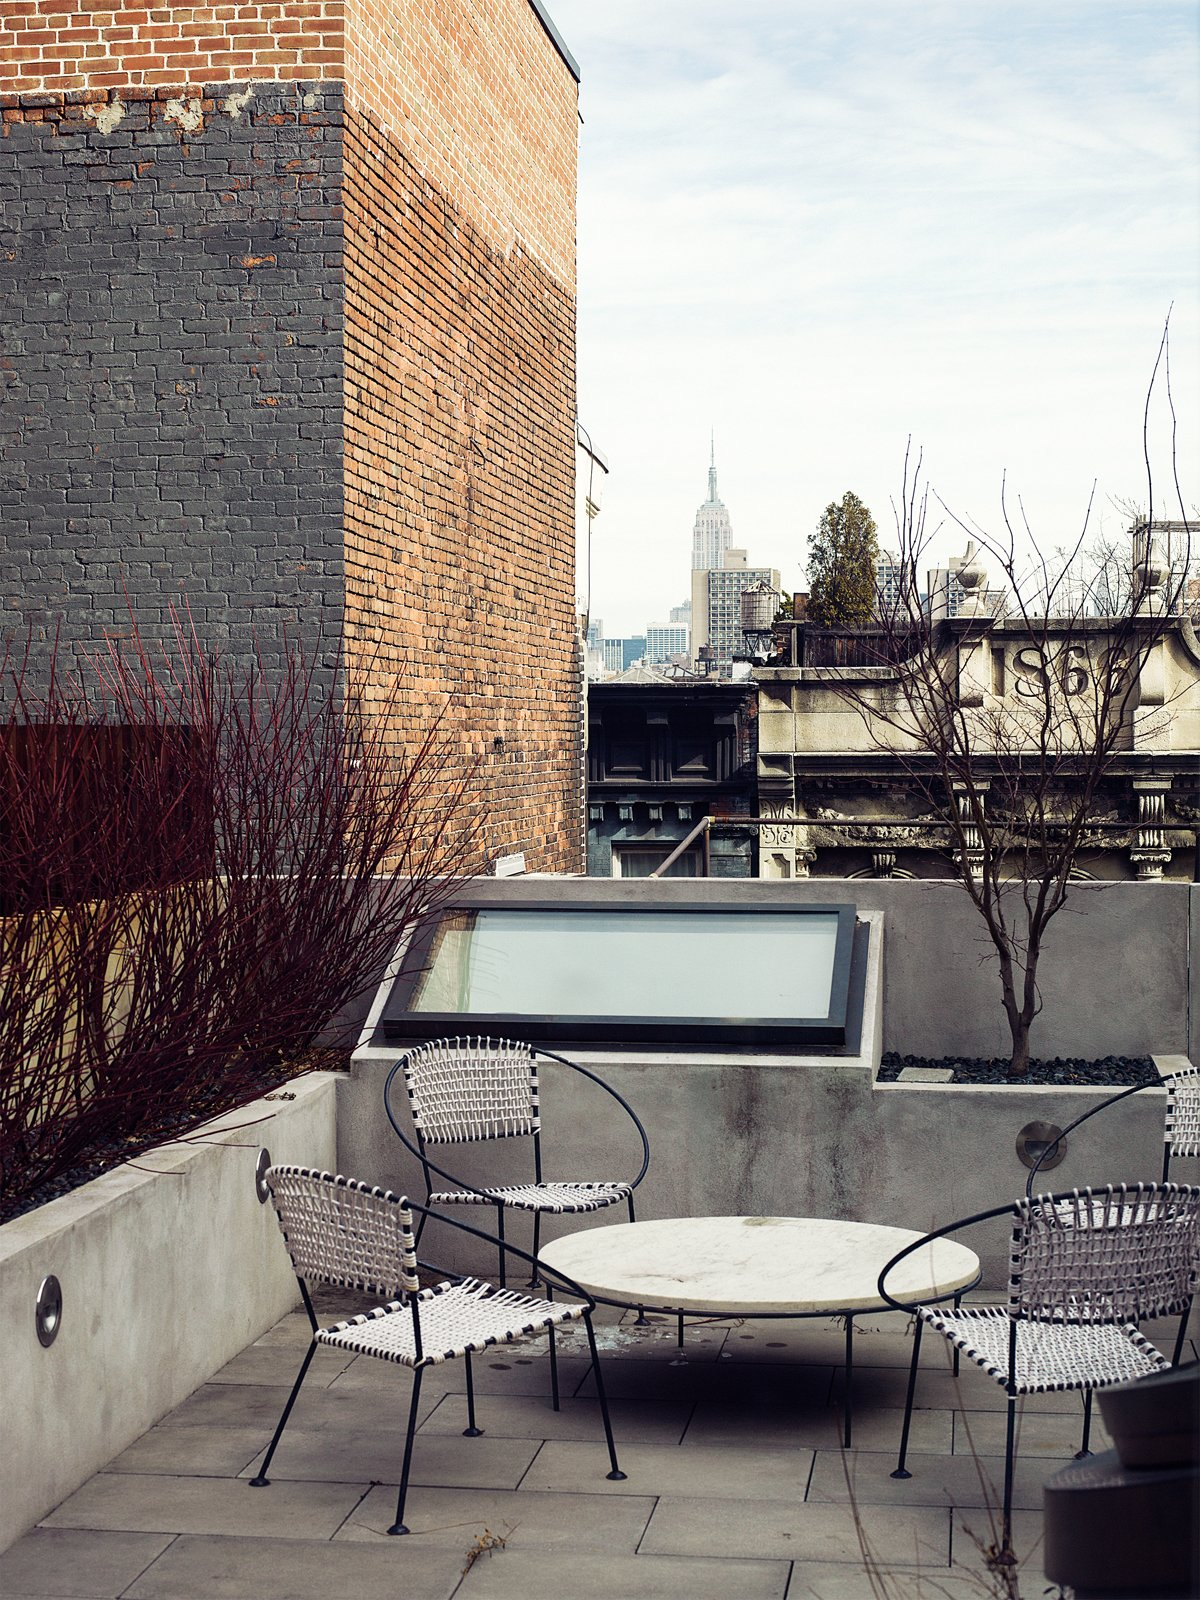 #outdoor #design #modern #outside #indooroutdoorliving #roofterrace #exterior #tribeca #loft #pulltab #skylit #lightwells #terrace #marcovitz #geiger #table #chairs #paulmccobb #vintage #concrete #newyork #renovation #architecture   Photo by João Canziani  Outdoor